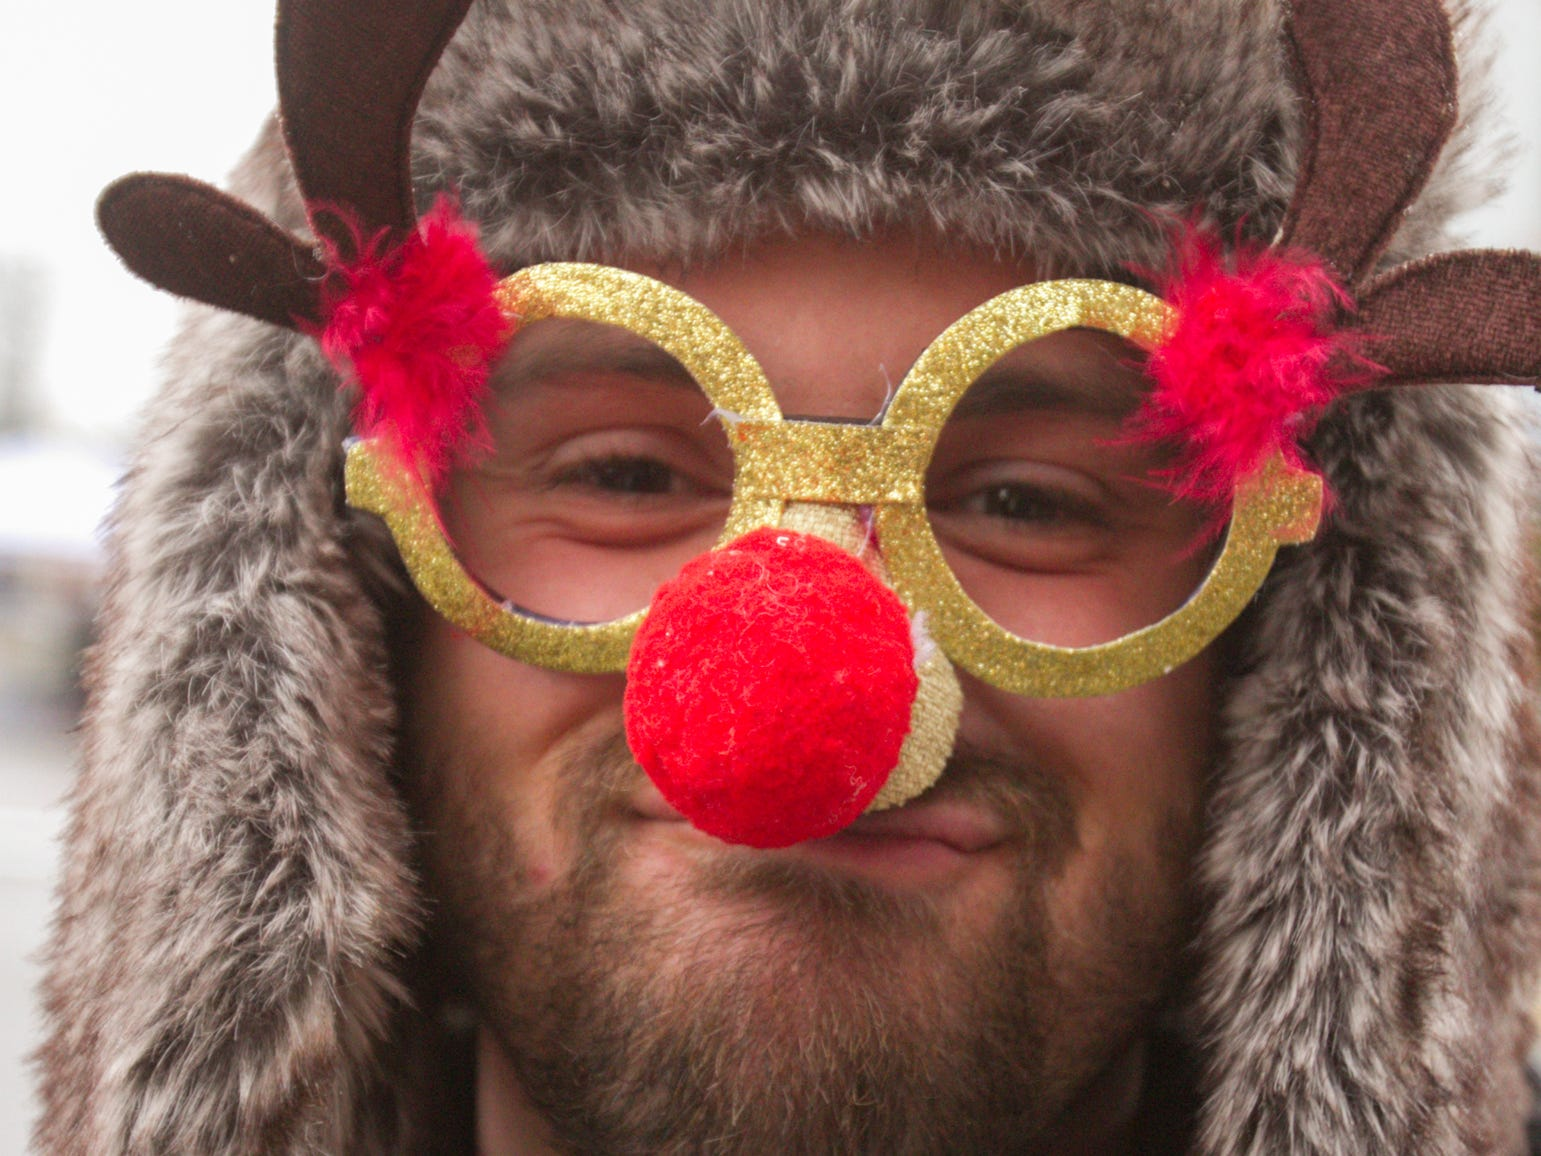 David West of Ferndale, visiting family in Fowlerville, got into the spirit of the Christmas in the 'Ville festivities Saturday, Dec. 1, 2018.